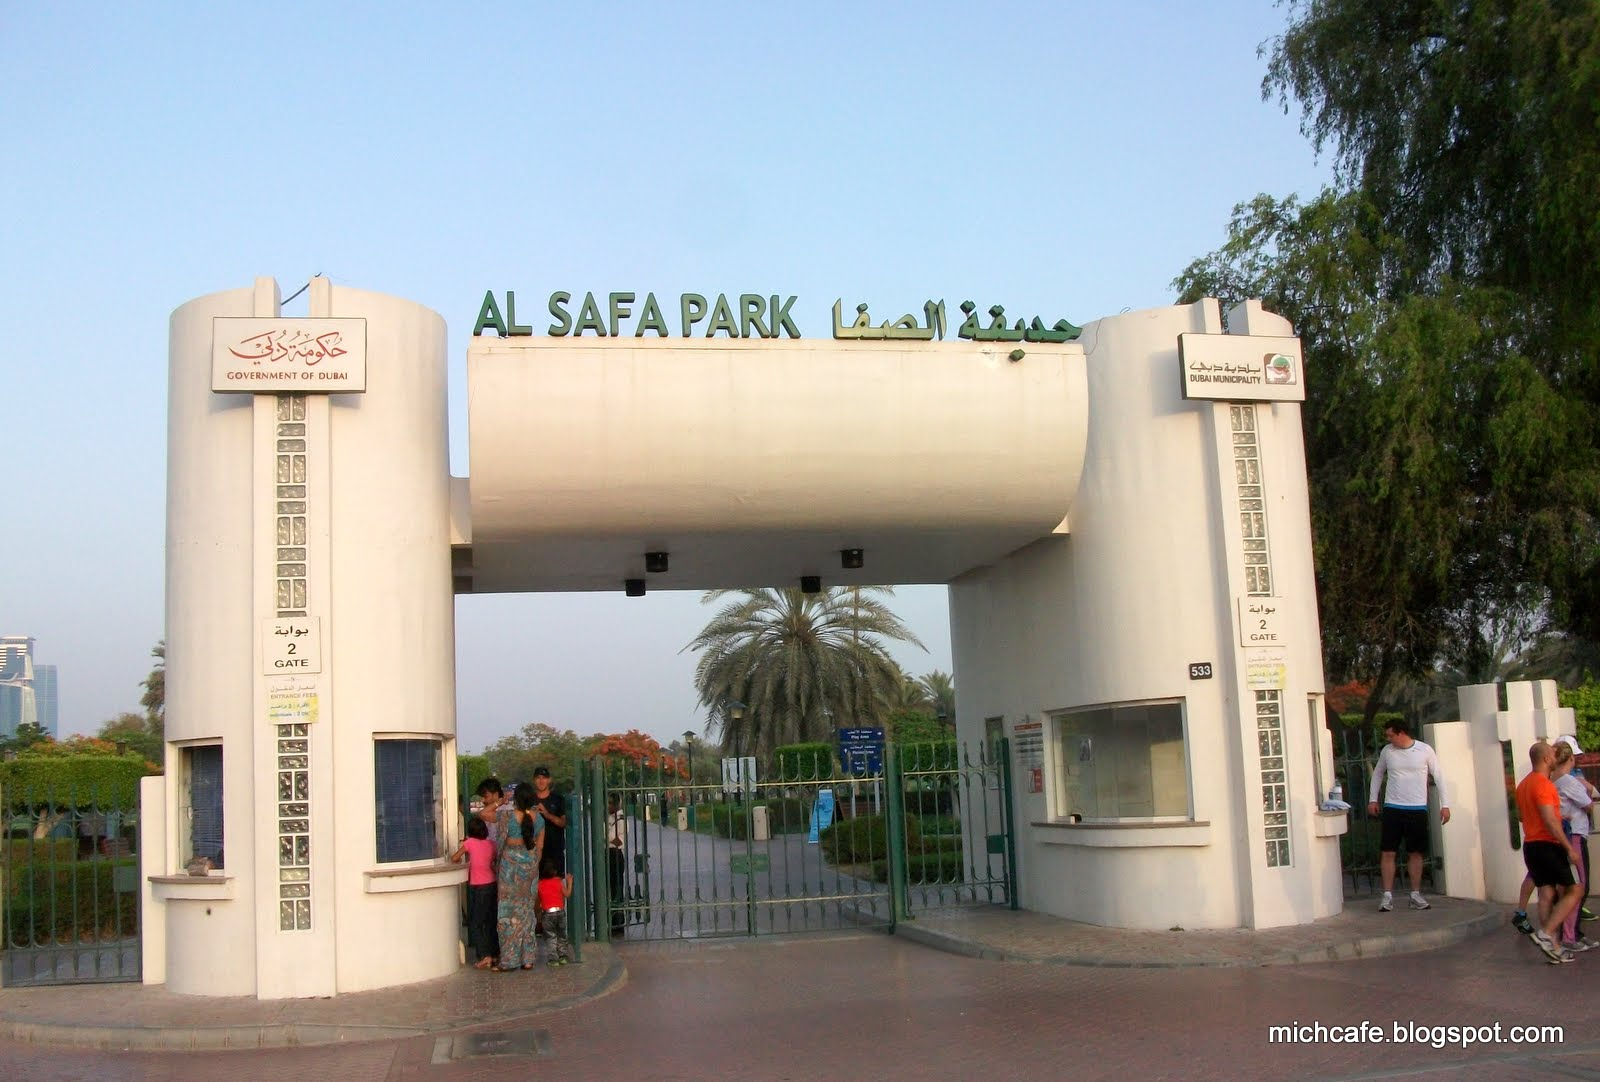 Safa Park Dubai is a 64 hectare urban park located in Dubai, United Arab Emirates. It is 10.53 km southwest of the traditional center of Dubai along Sheikh Zayed Road